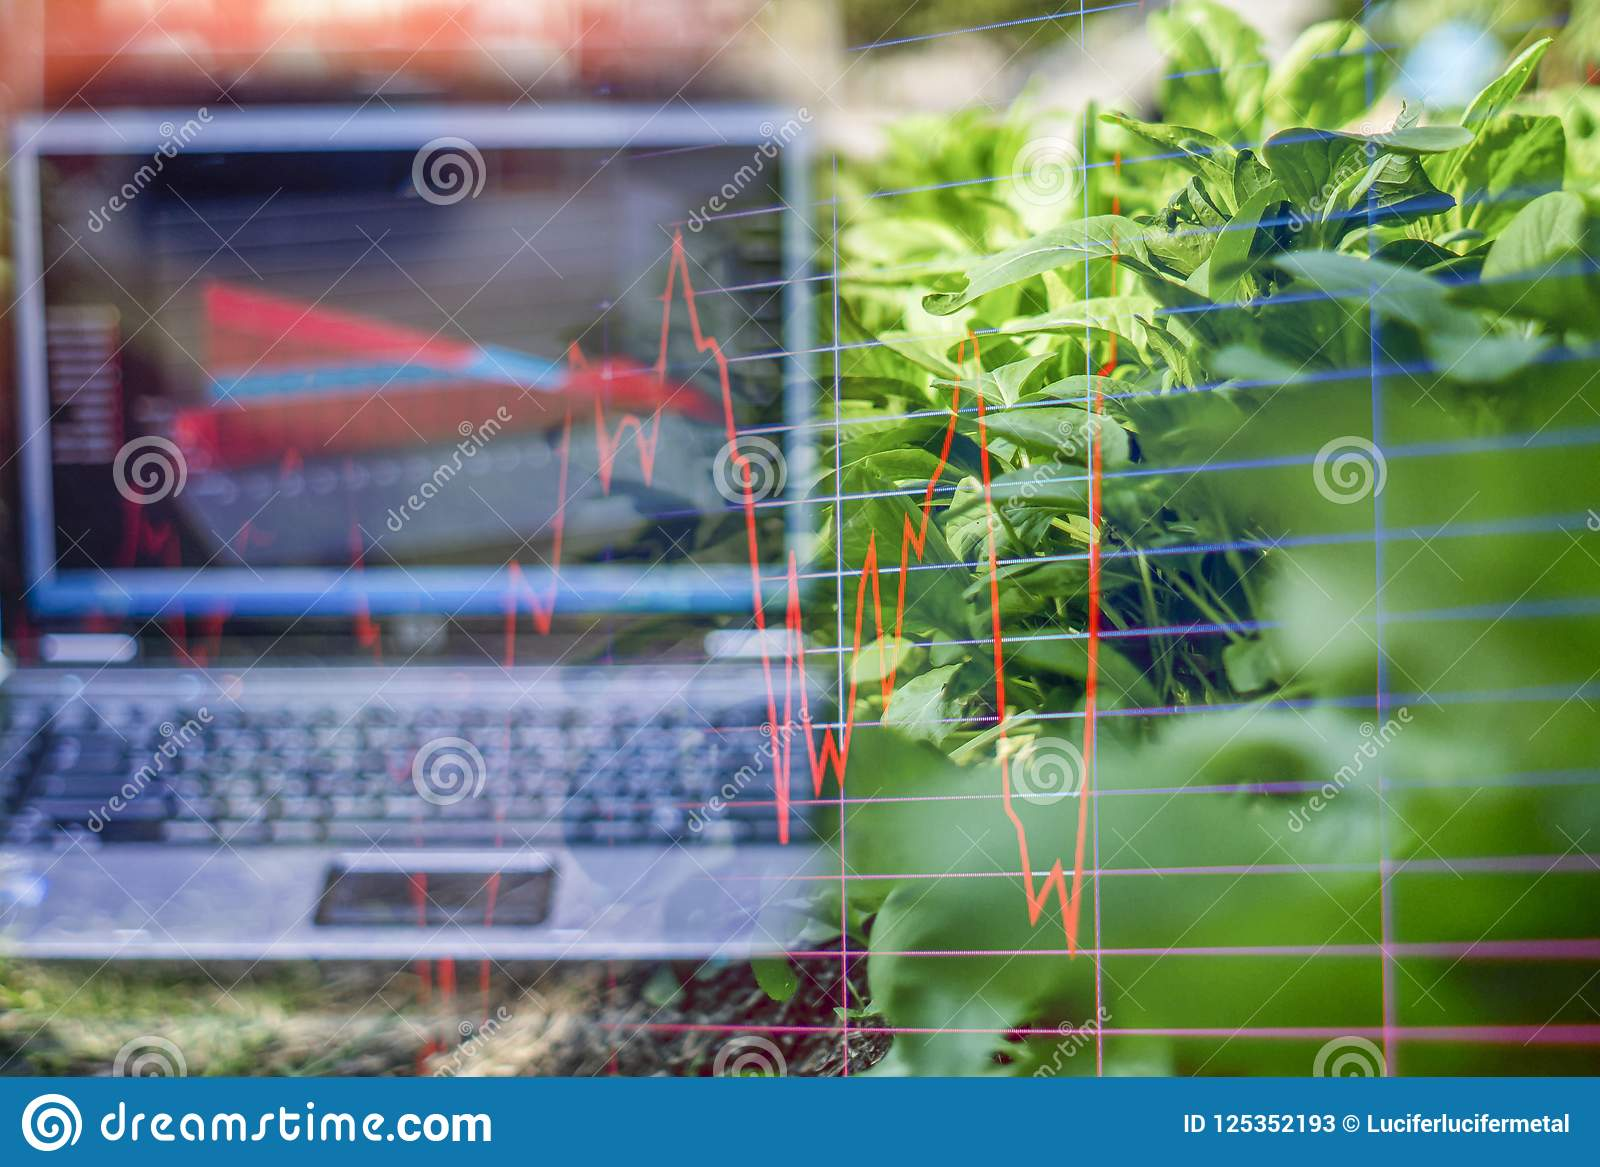 Vegetable garden Organic , And light in morning On a closed farm system Non-toxic And a computer screen showing stock trading char